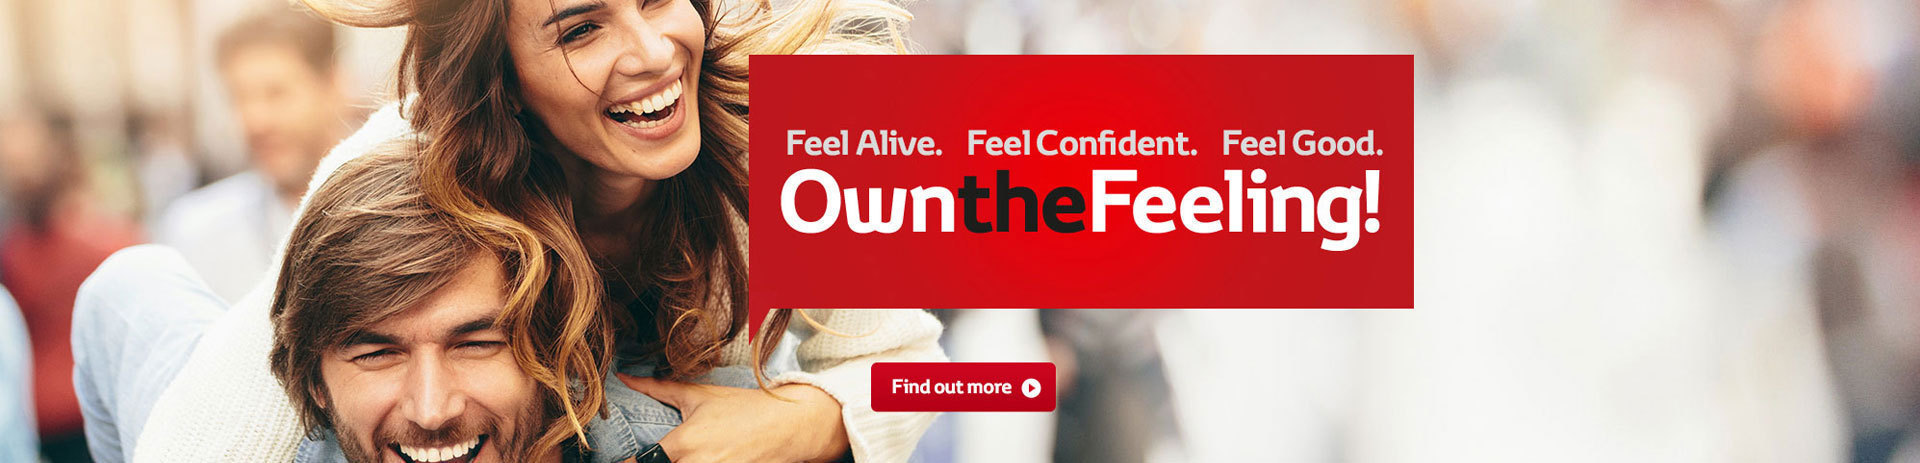 Feel Alive. Feel Confident. Feel Good.